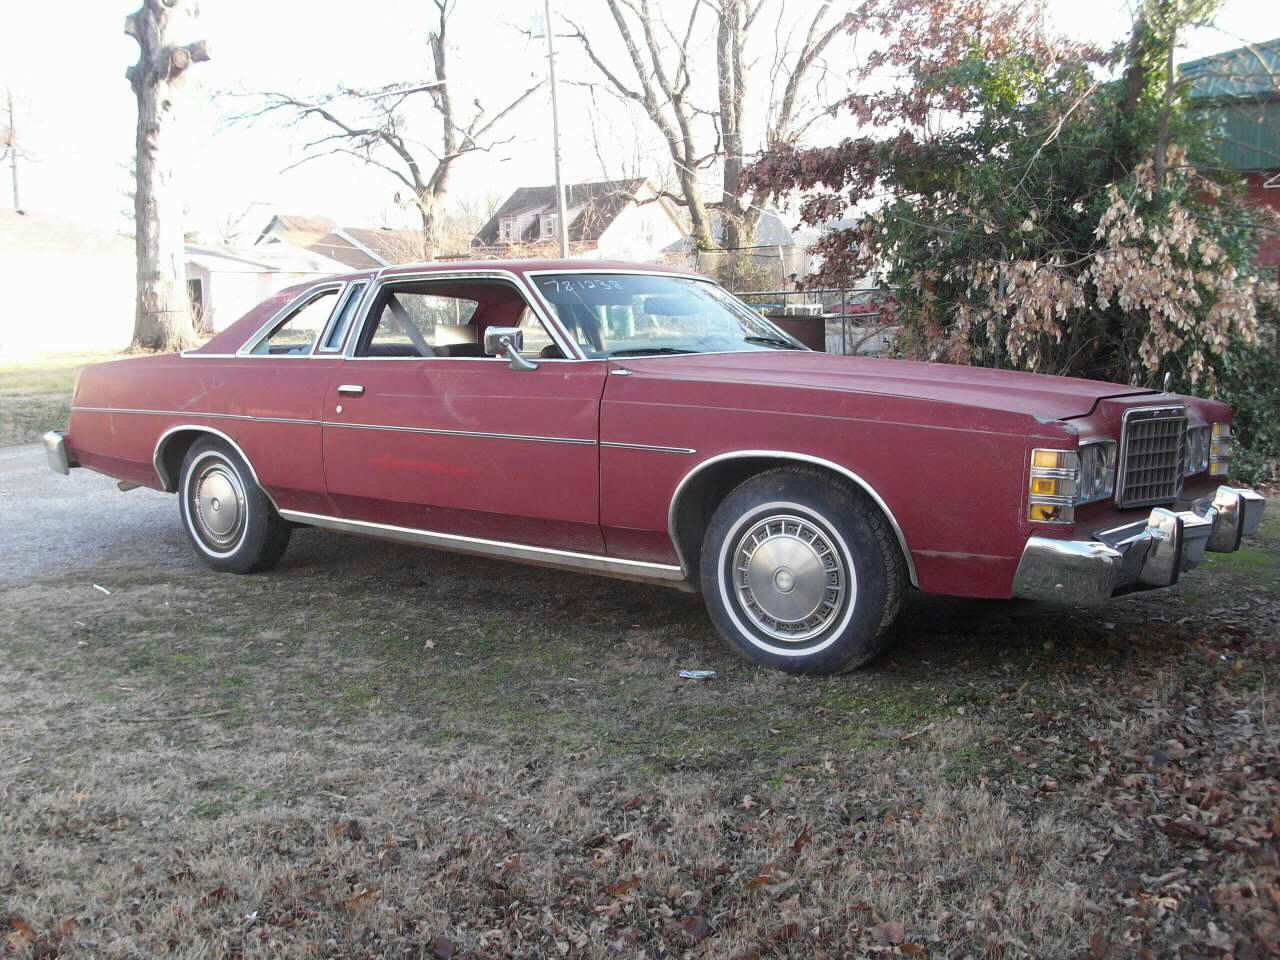 Loughmiller motors red red cloth interior v 8 auto 2 door ac amfm 70000 miles storm damaged to windows on right side publicscrutiny Choice Image